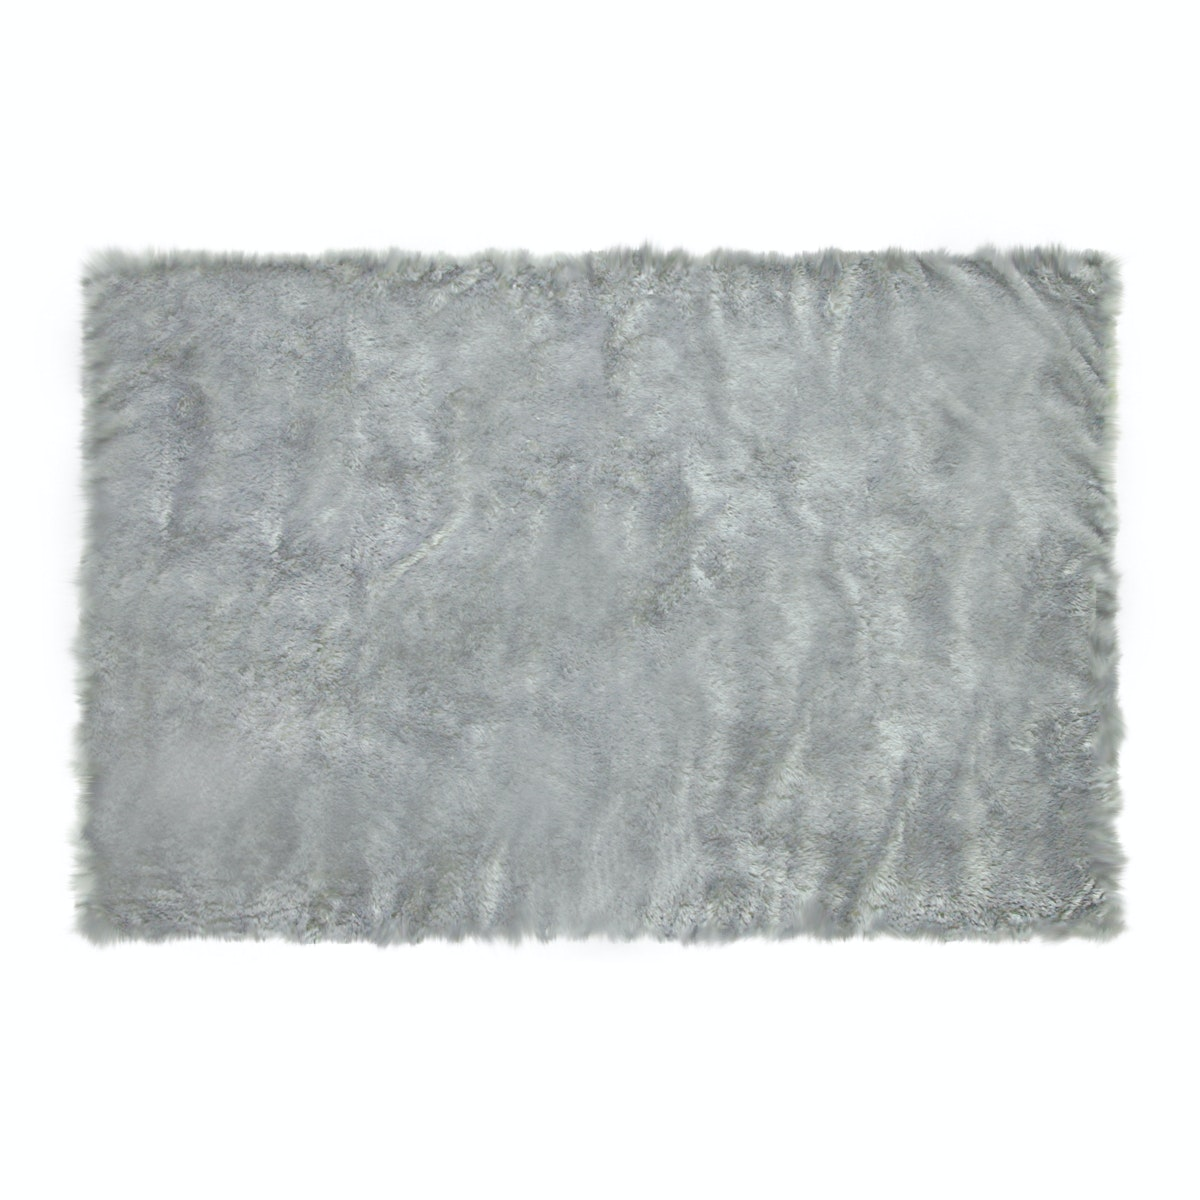 Glerry Home Decor Square Grey Fur Rug 100x150 cm